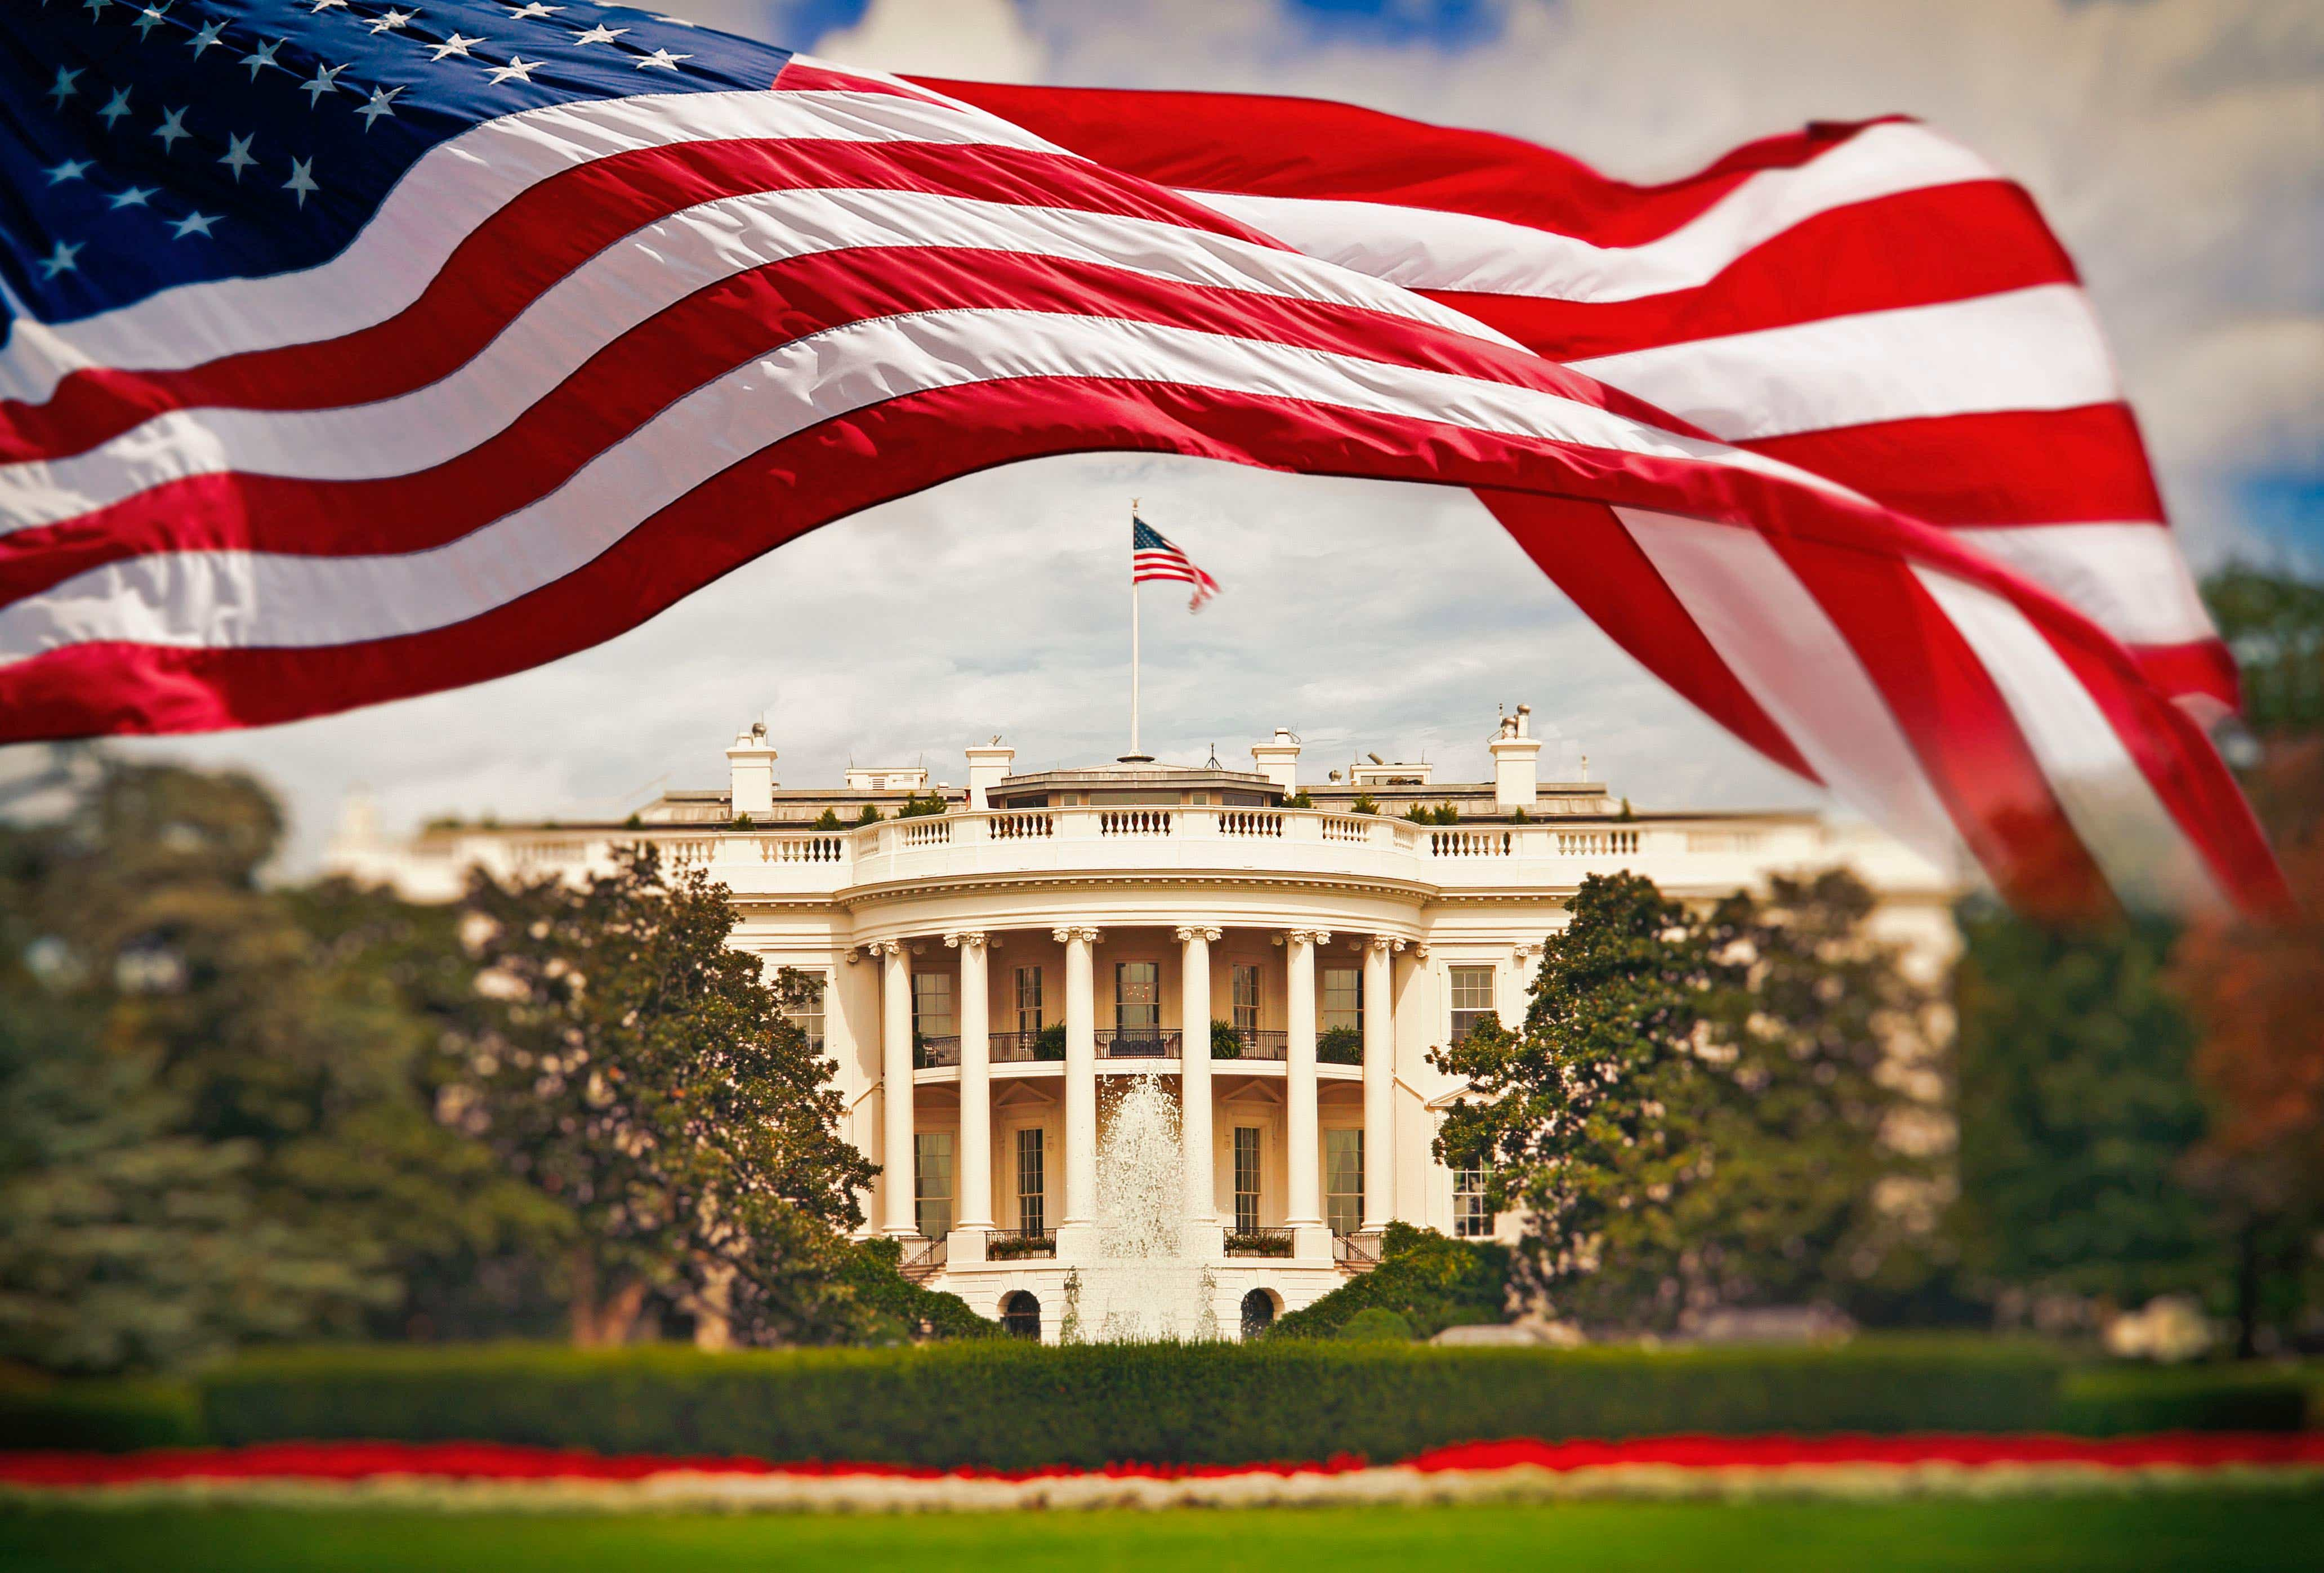 US flag and White House